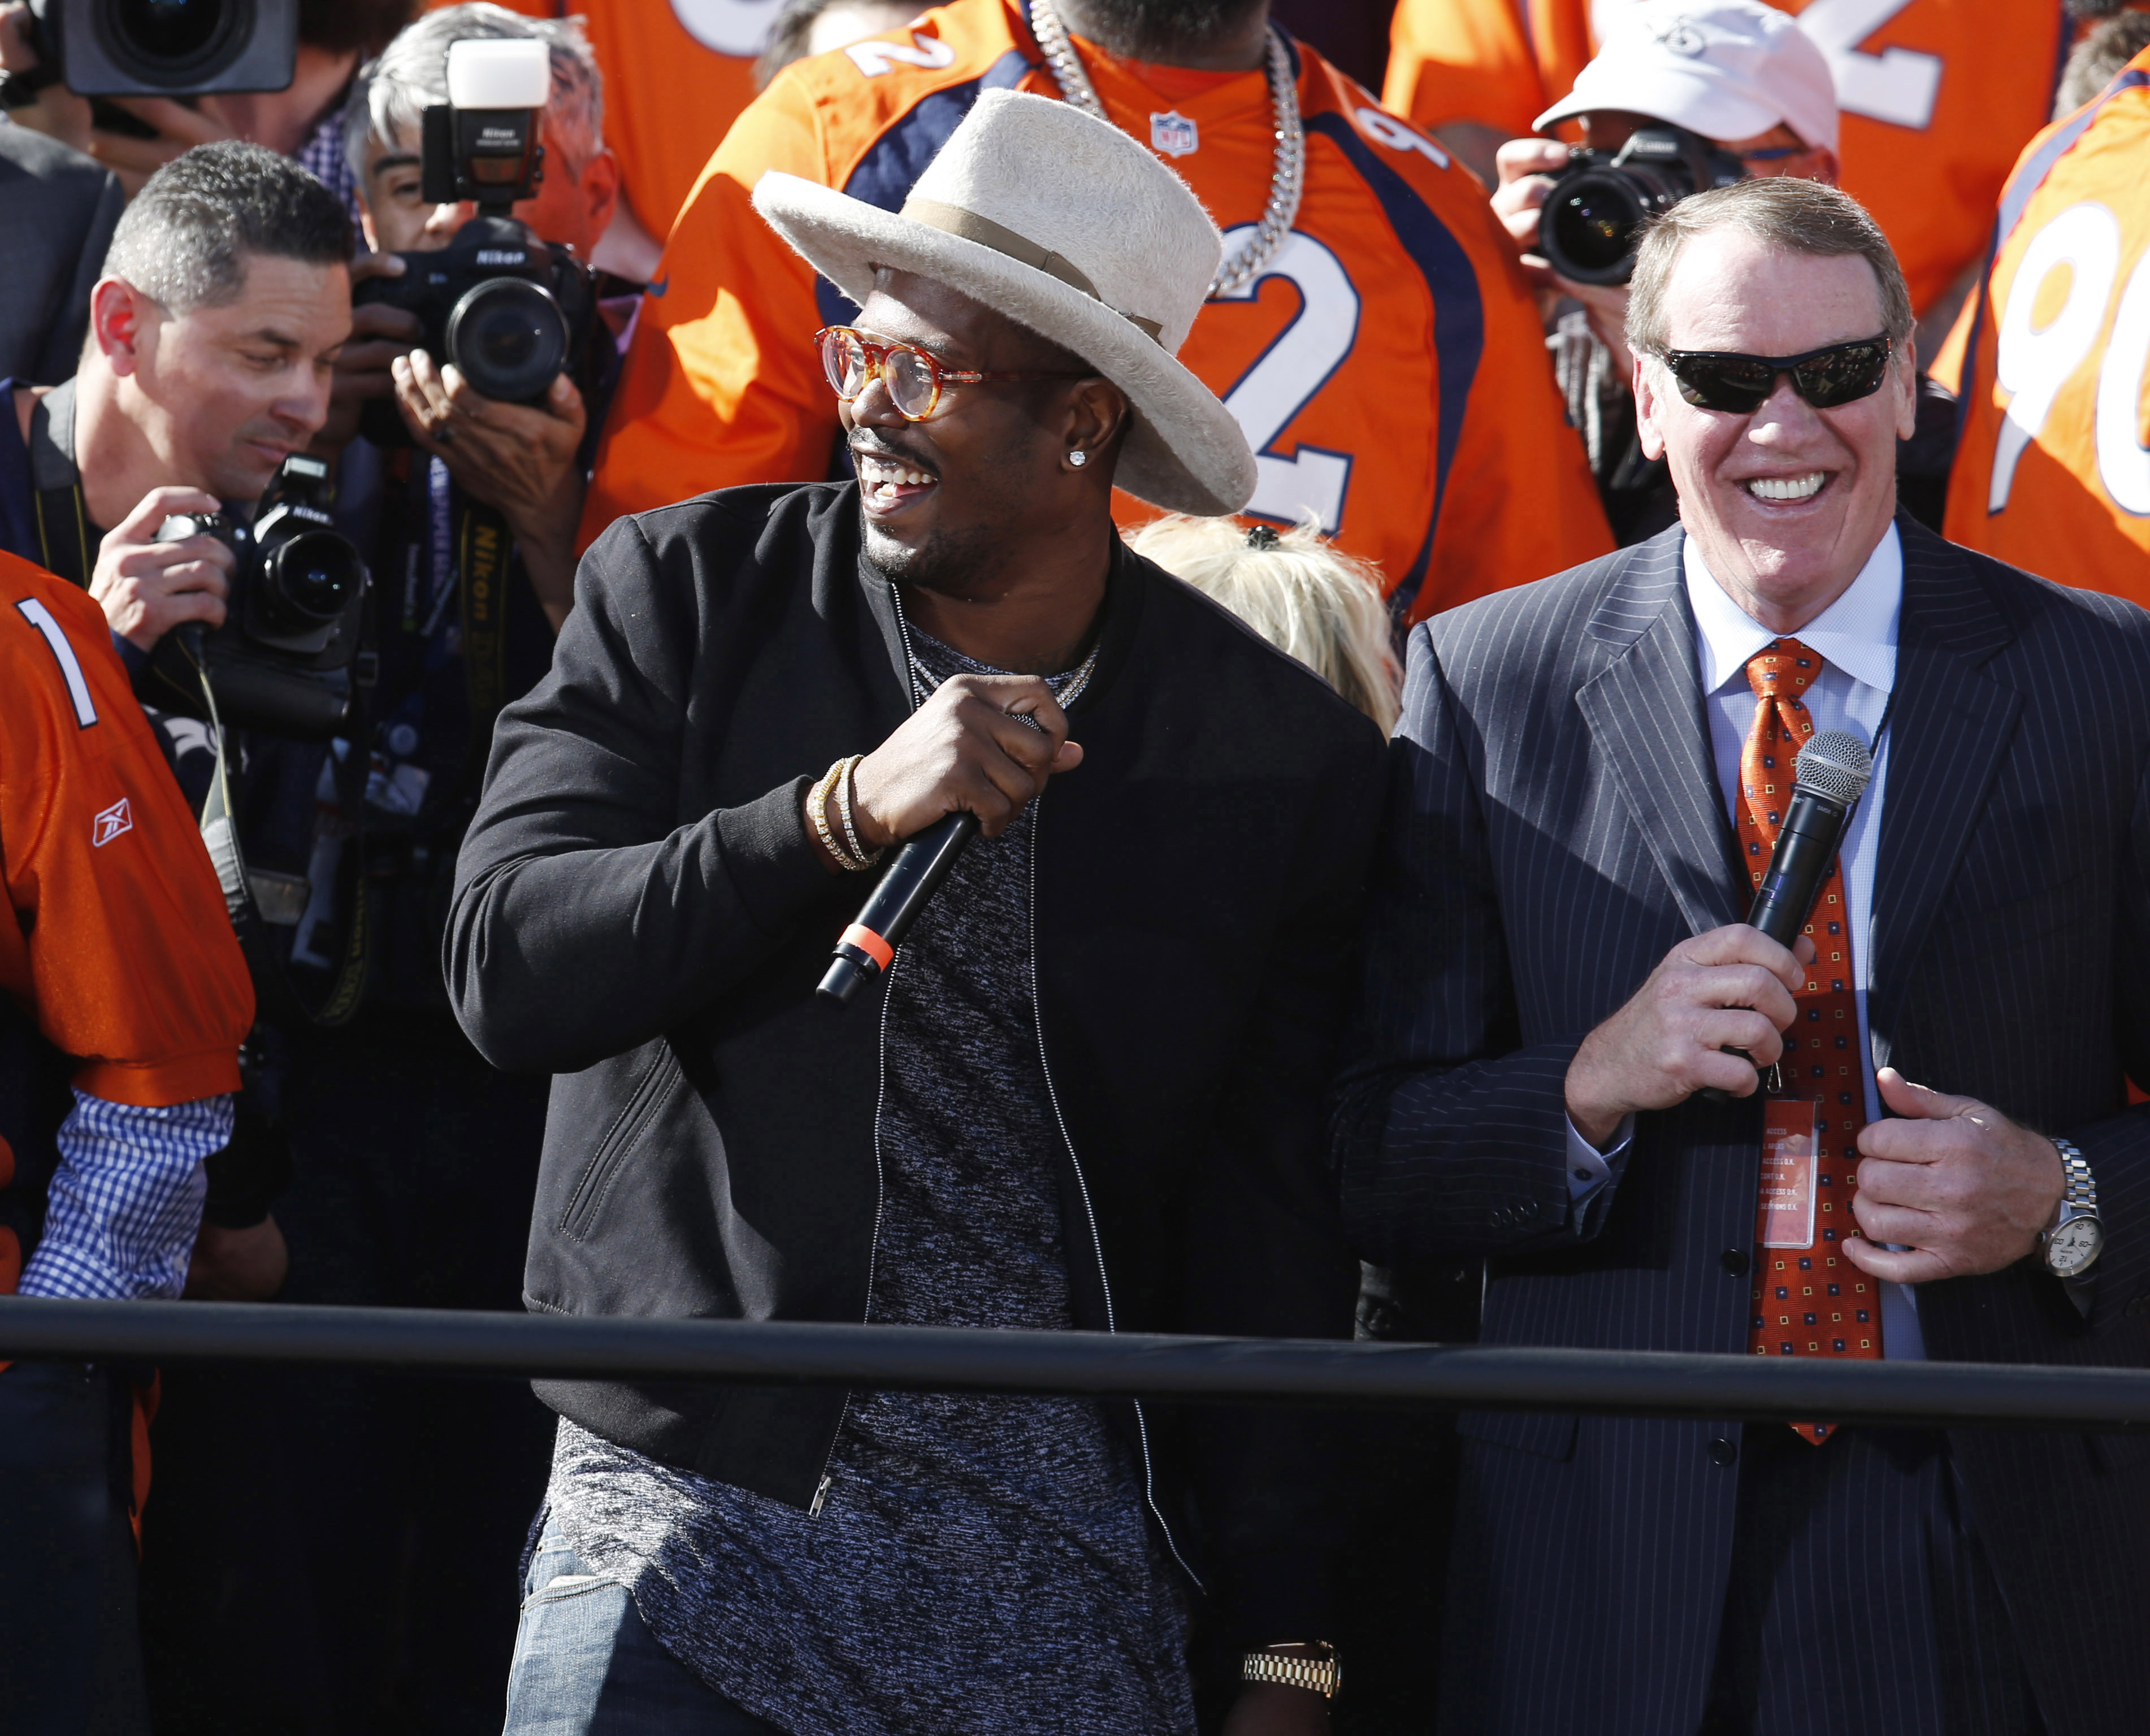 FILE - In this Tuesday, Feb. 9, 2016, file photo, Denver Broncos outside linebacker Von Miller, center, jokes with teammates at a rally following a parade through downtown Denver. Miller, the Super Bowl 50 MVP, and the Broncos have reached an impasse in c